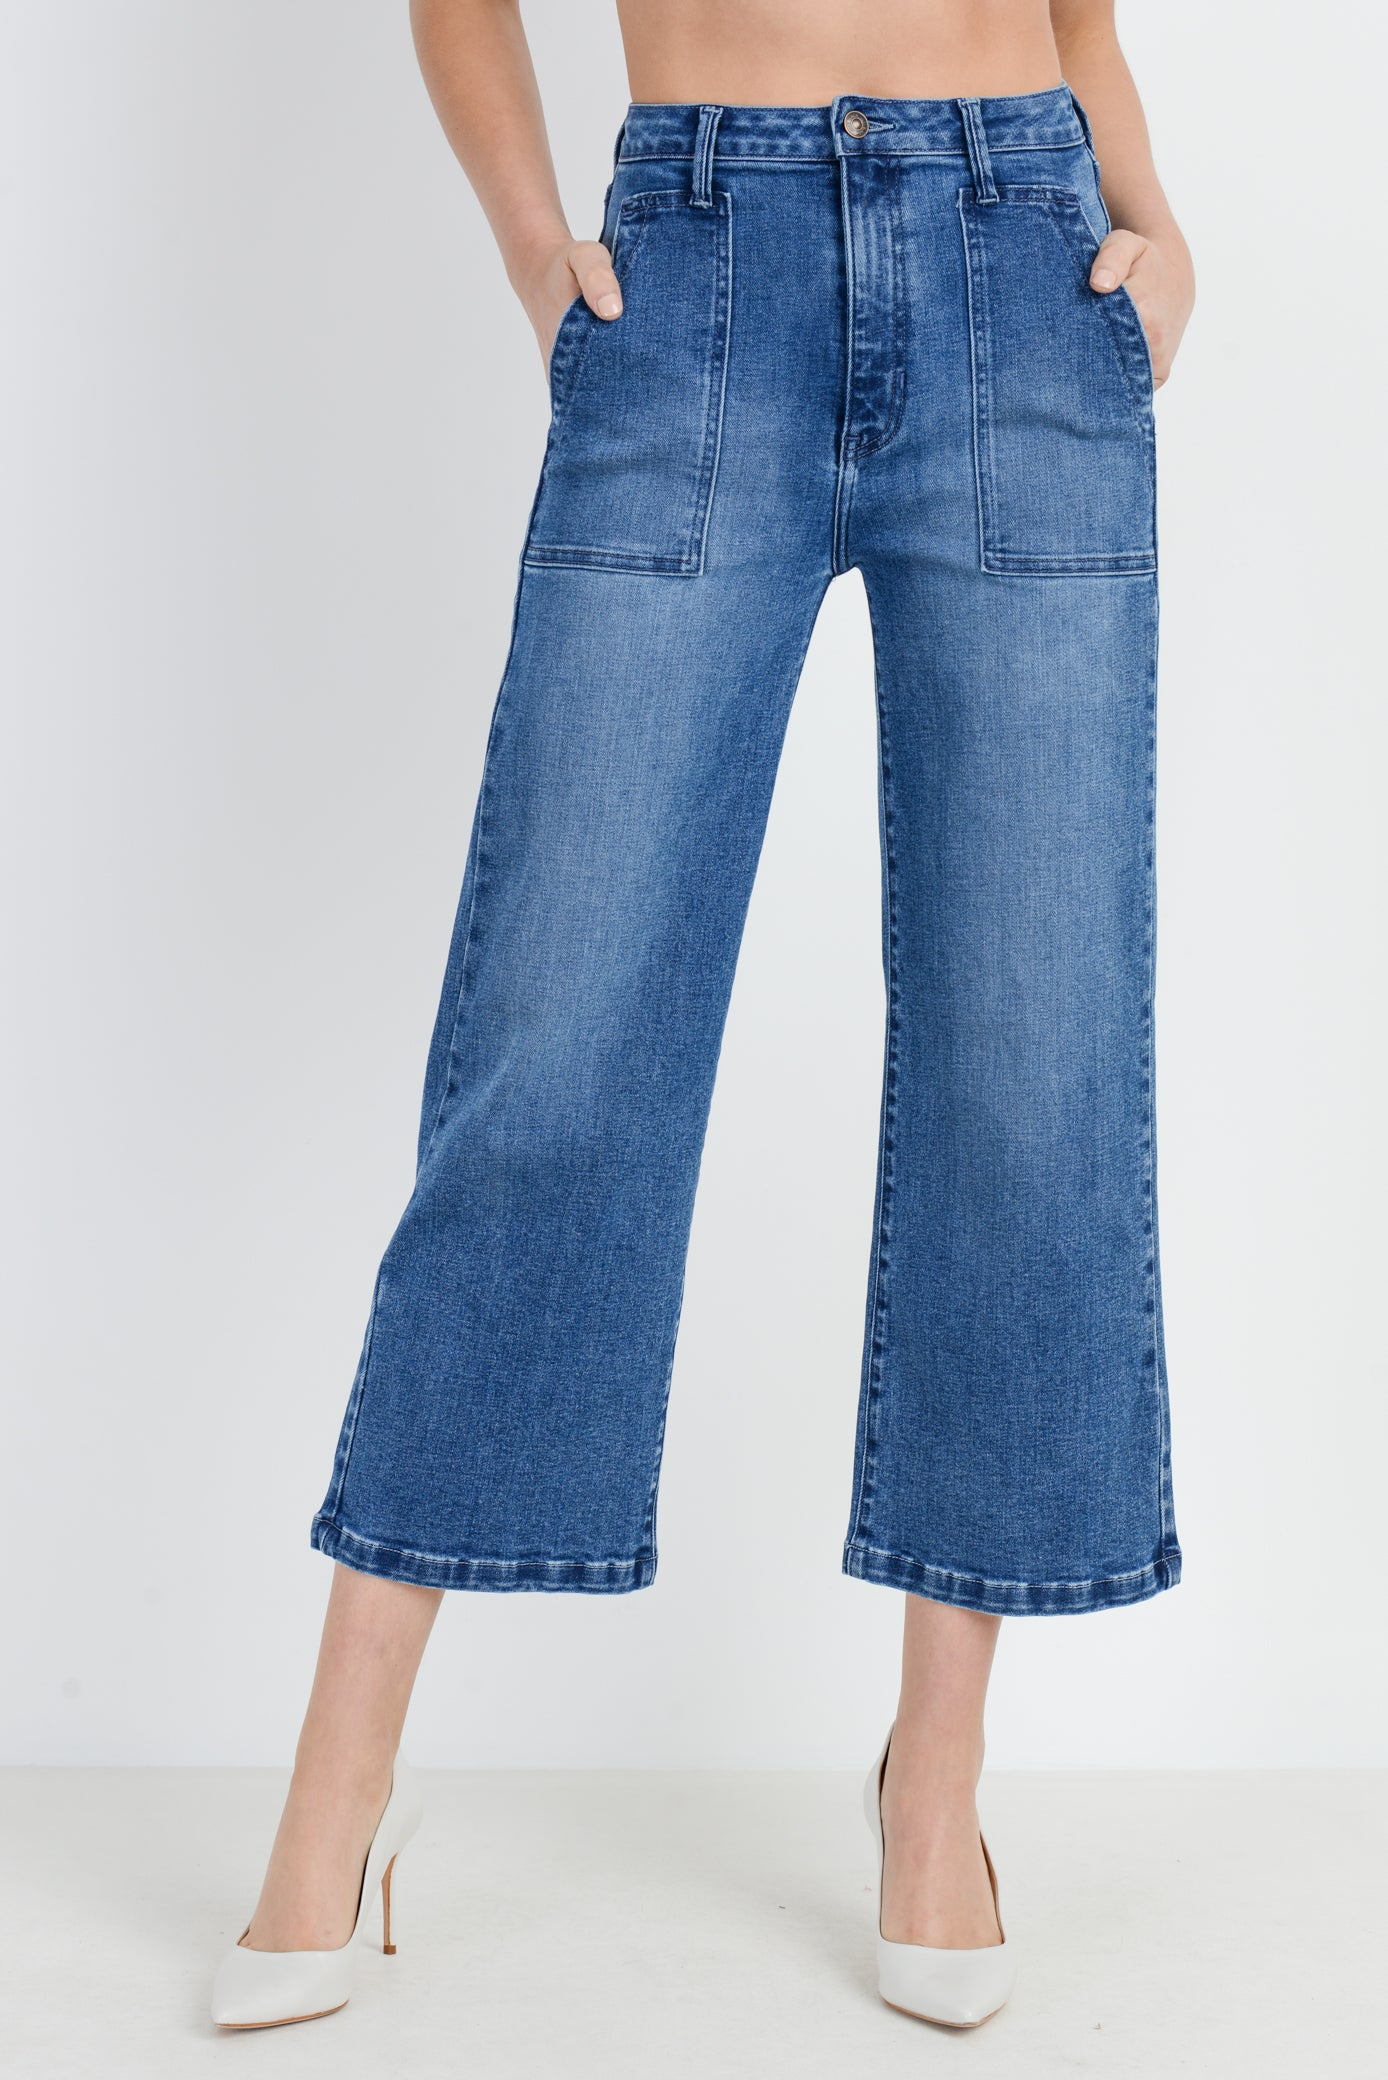 The Patch Wide Leg Jeans